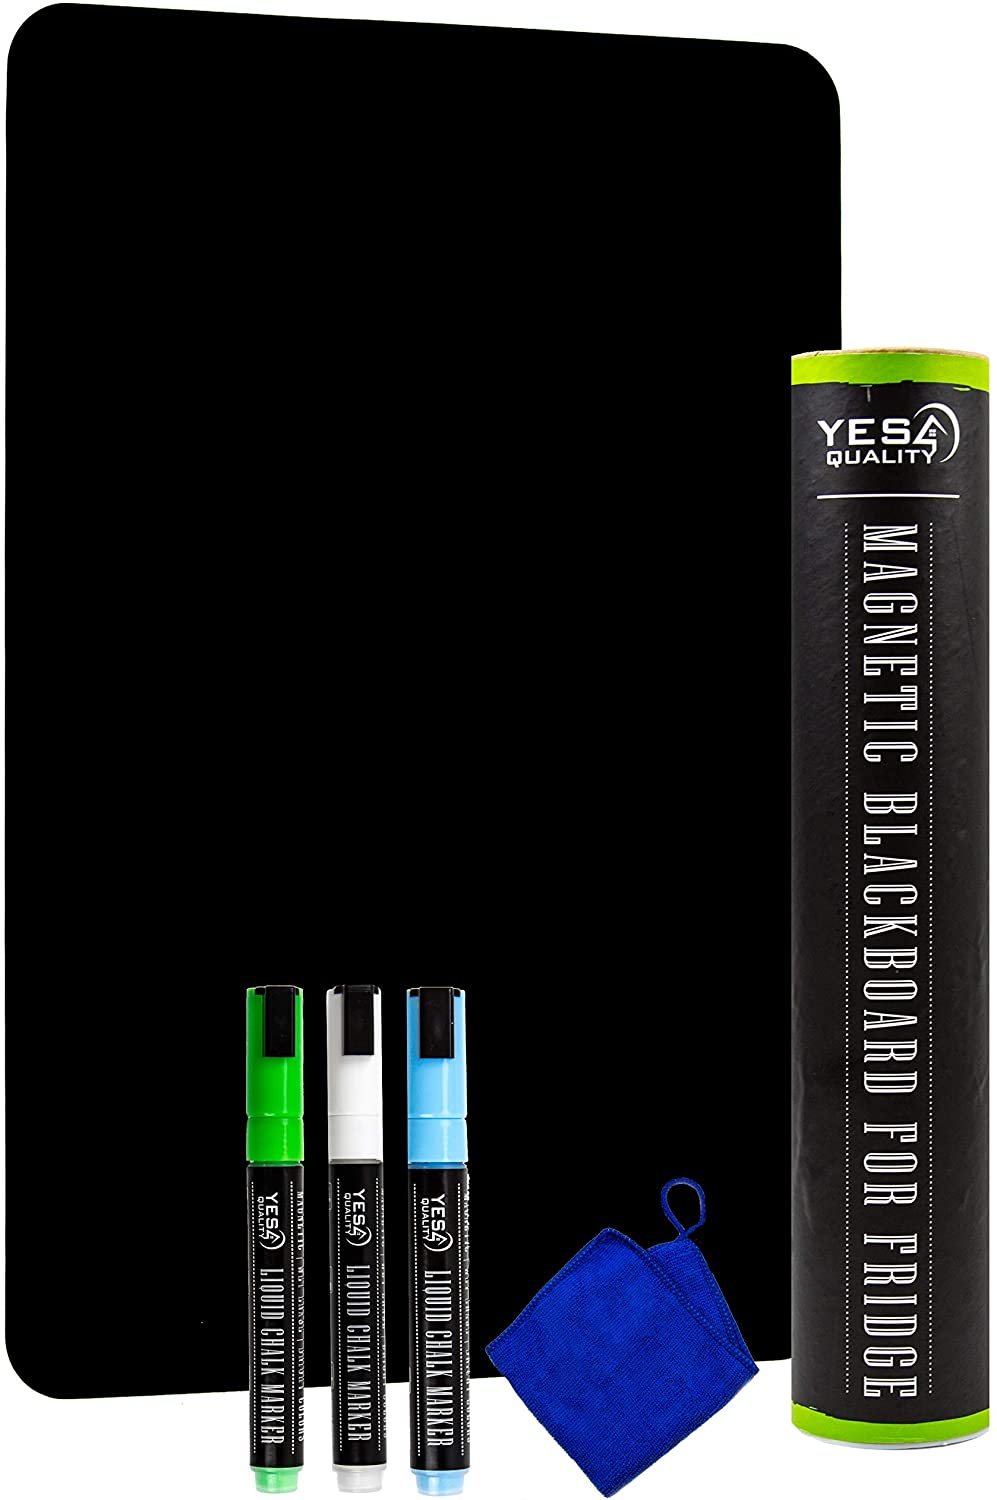 Magnetic Black Dry Erase Board for Fridge with Easy-Erase Surface - 12 x 8 in - Includes 3 Neon Chalk Markers and Eraser - Refrigerator Chalkboard